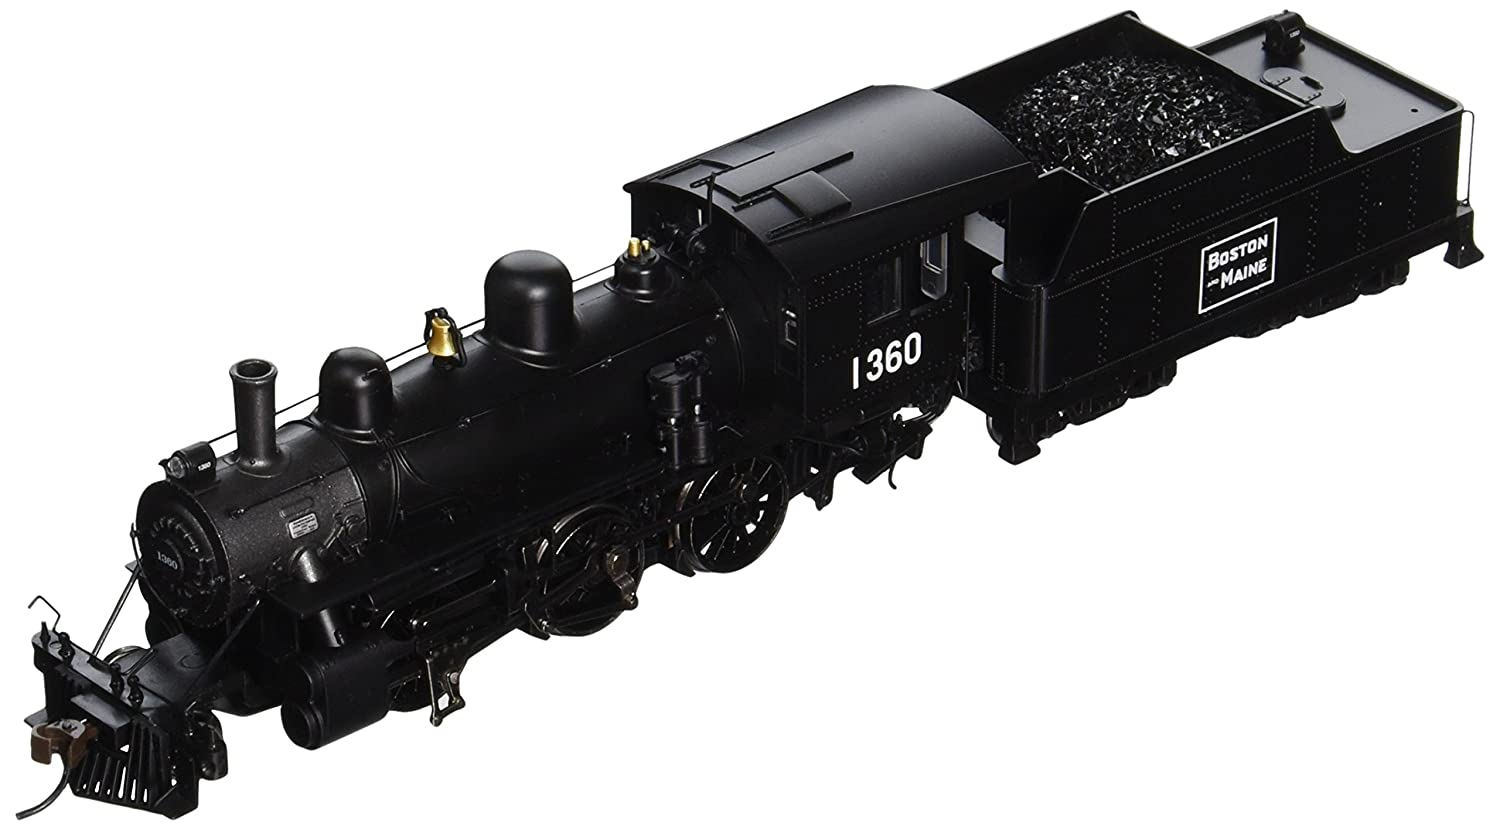 Bachmann Industries Alco 2-6-0 DCC Sound Value Equipped HO Scale #1360 Boston and Maine Locomotive 51811